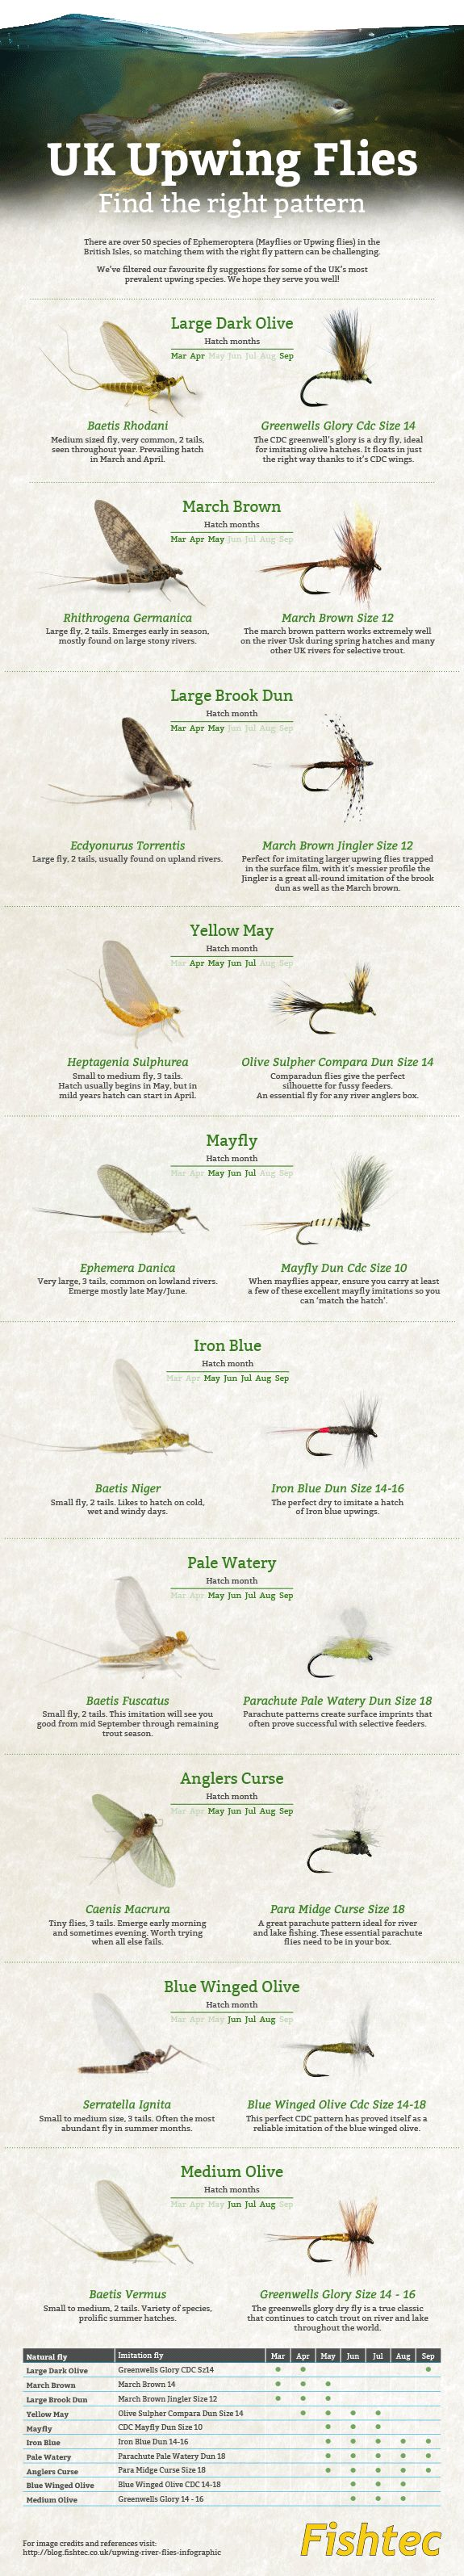 Fly fishing infographic upwing flies uk